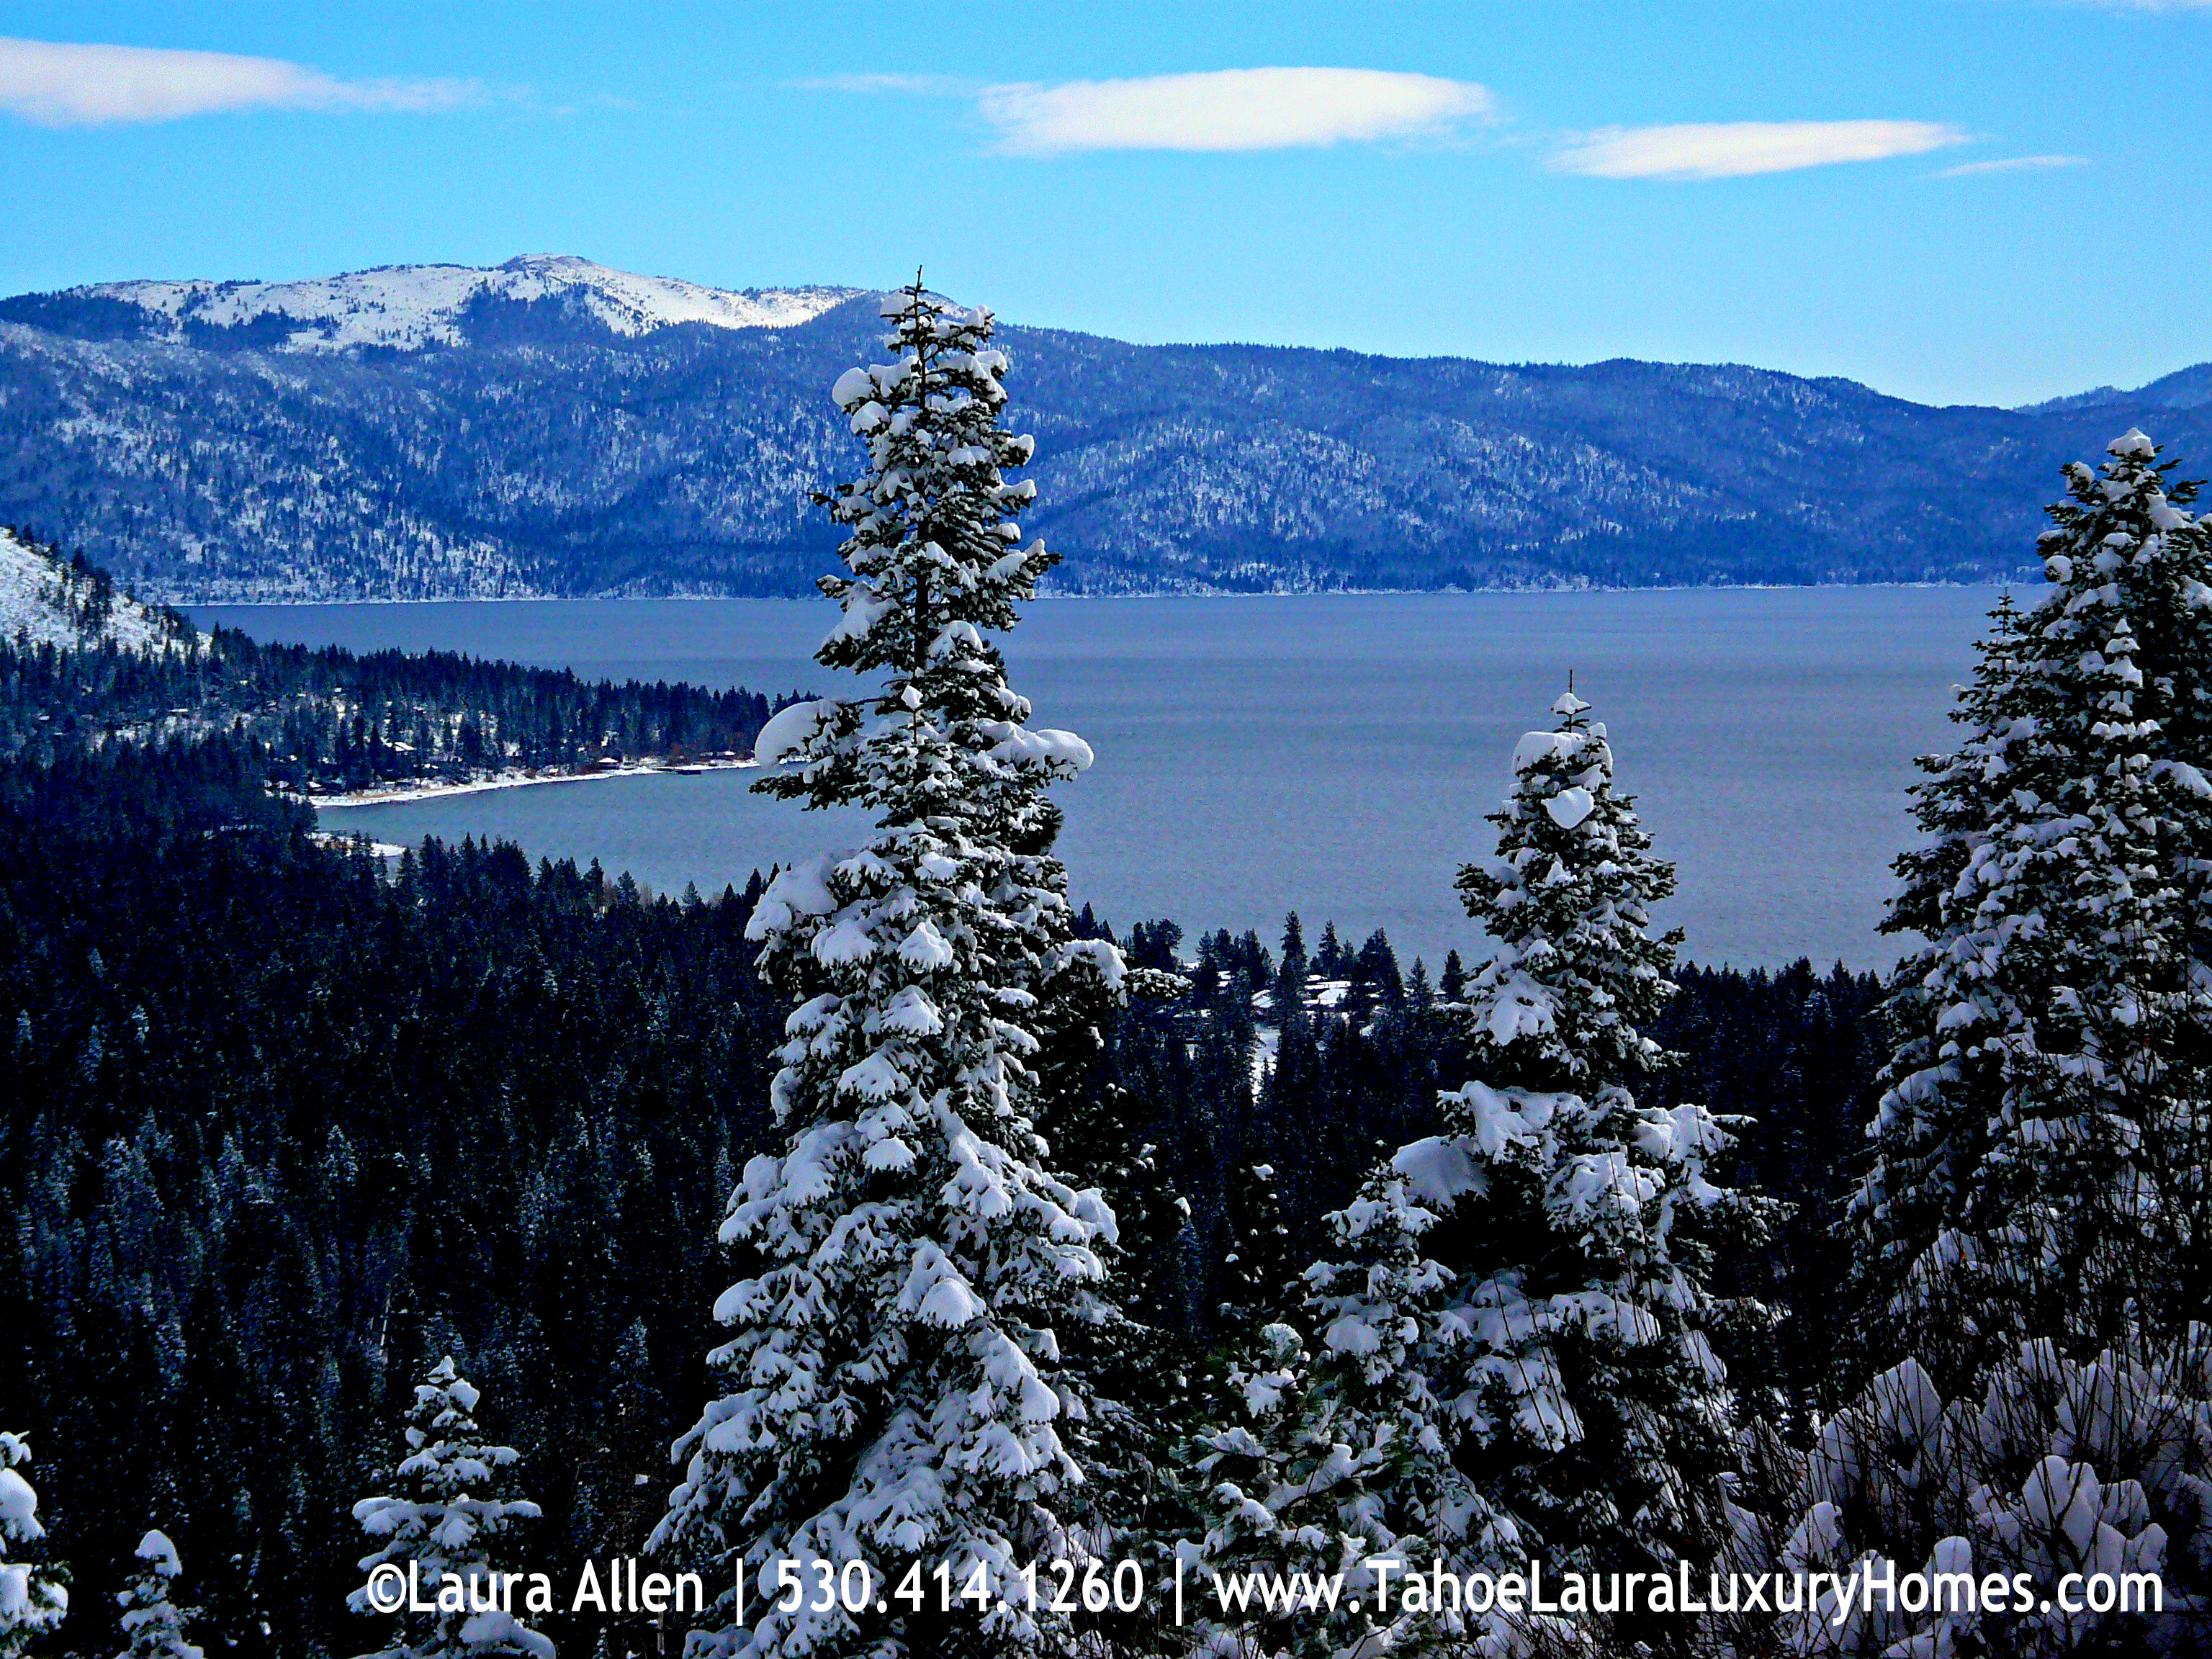 tahoe ski resorts, snow report - december 13 2012